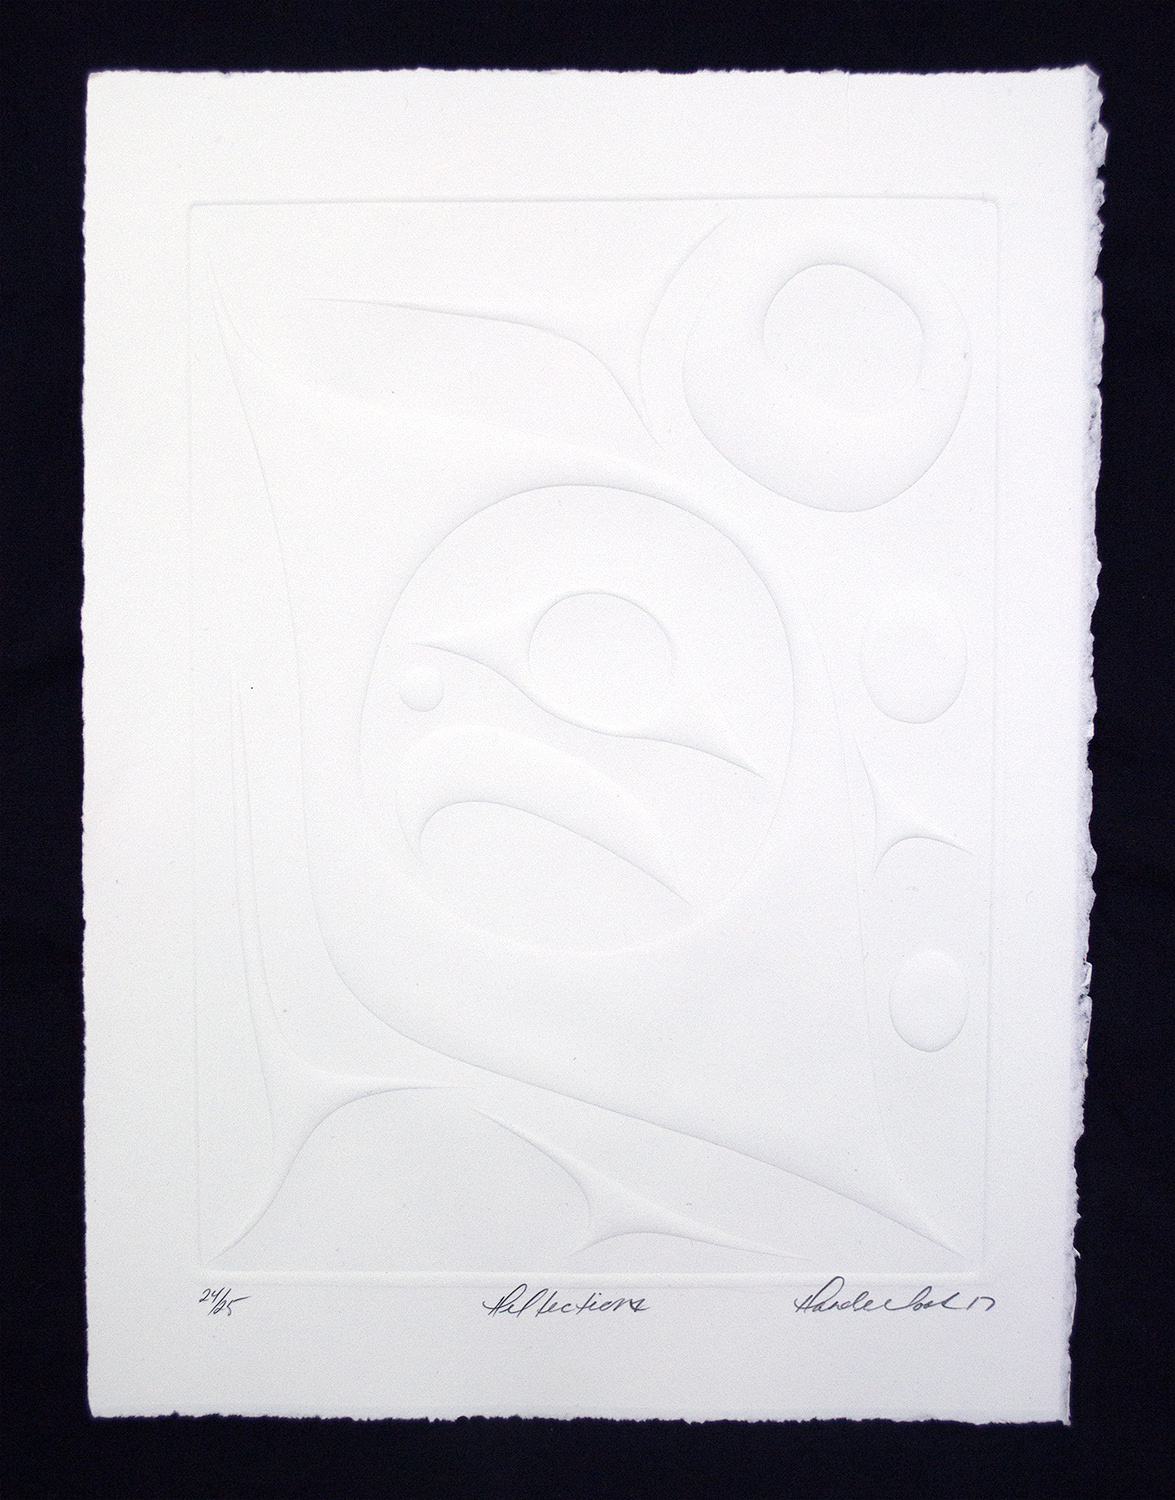 "Reflections, 2017, Rande Cook (Kwakwaka'wakw), Embossed paper, 15"" x 11"", ed. /25, 3 available, $300 unframed"